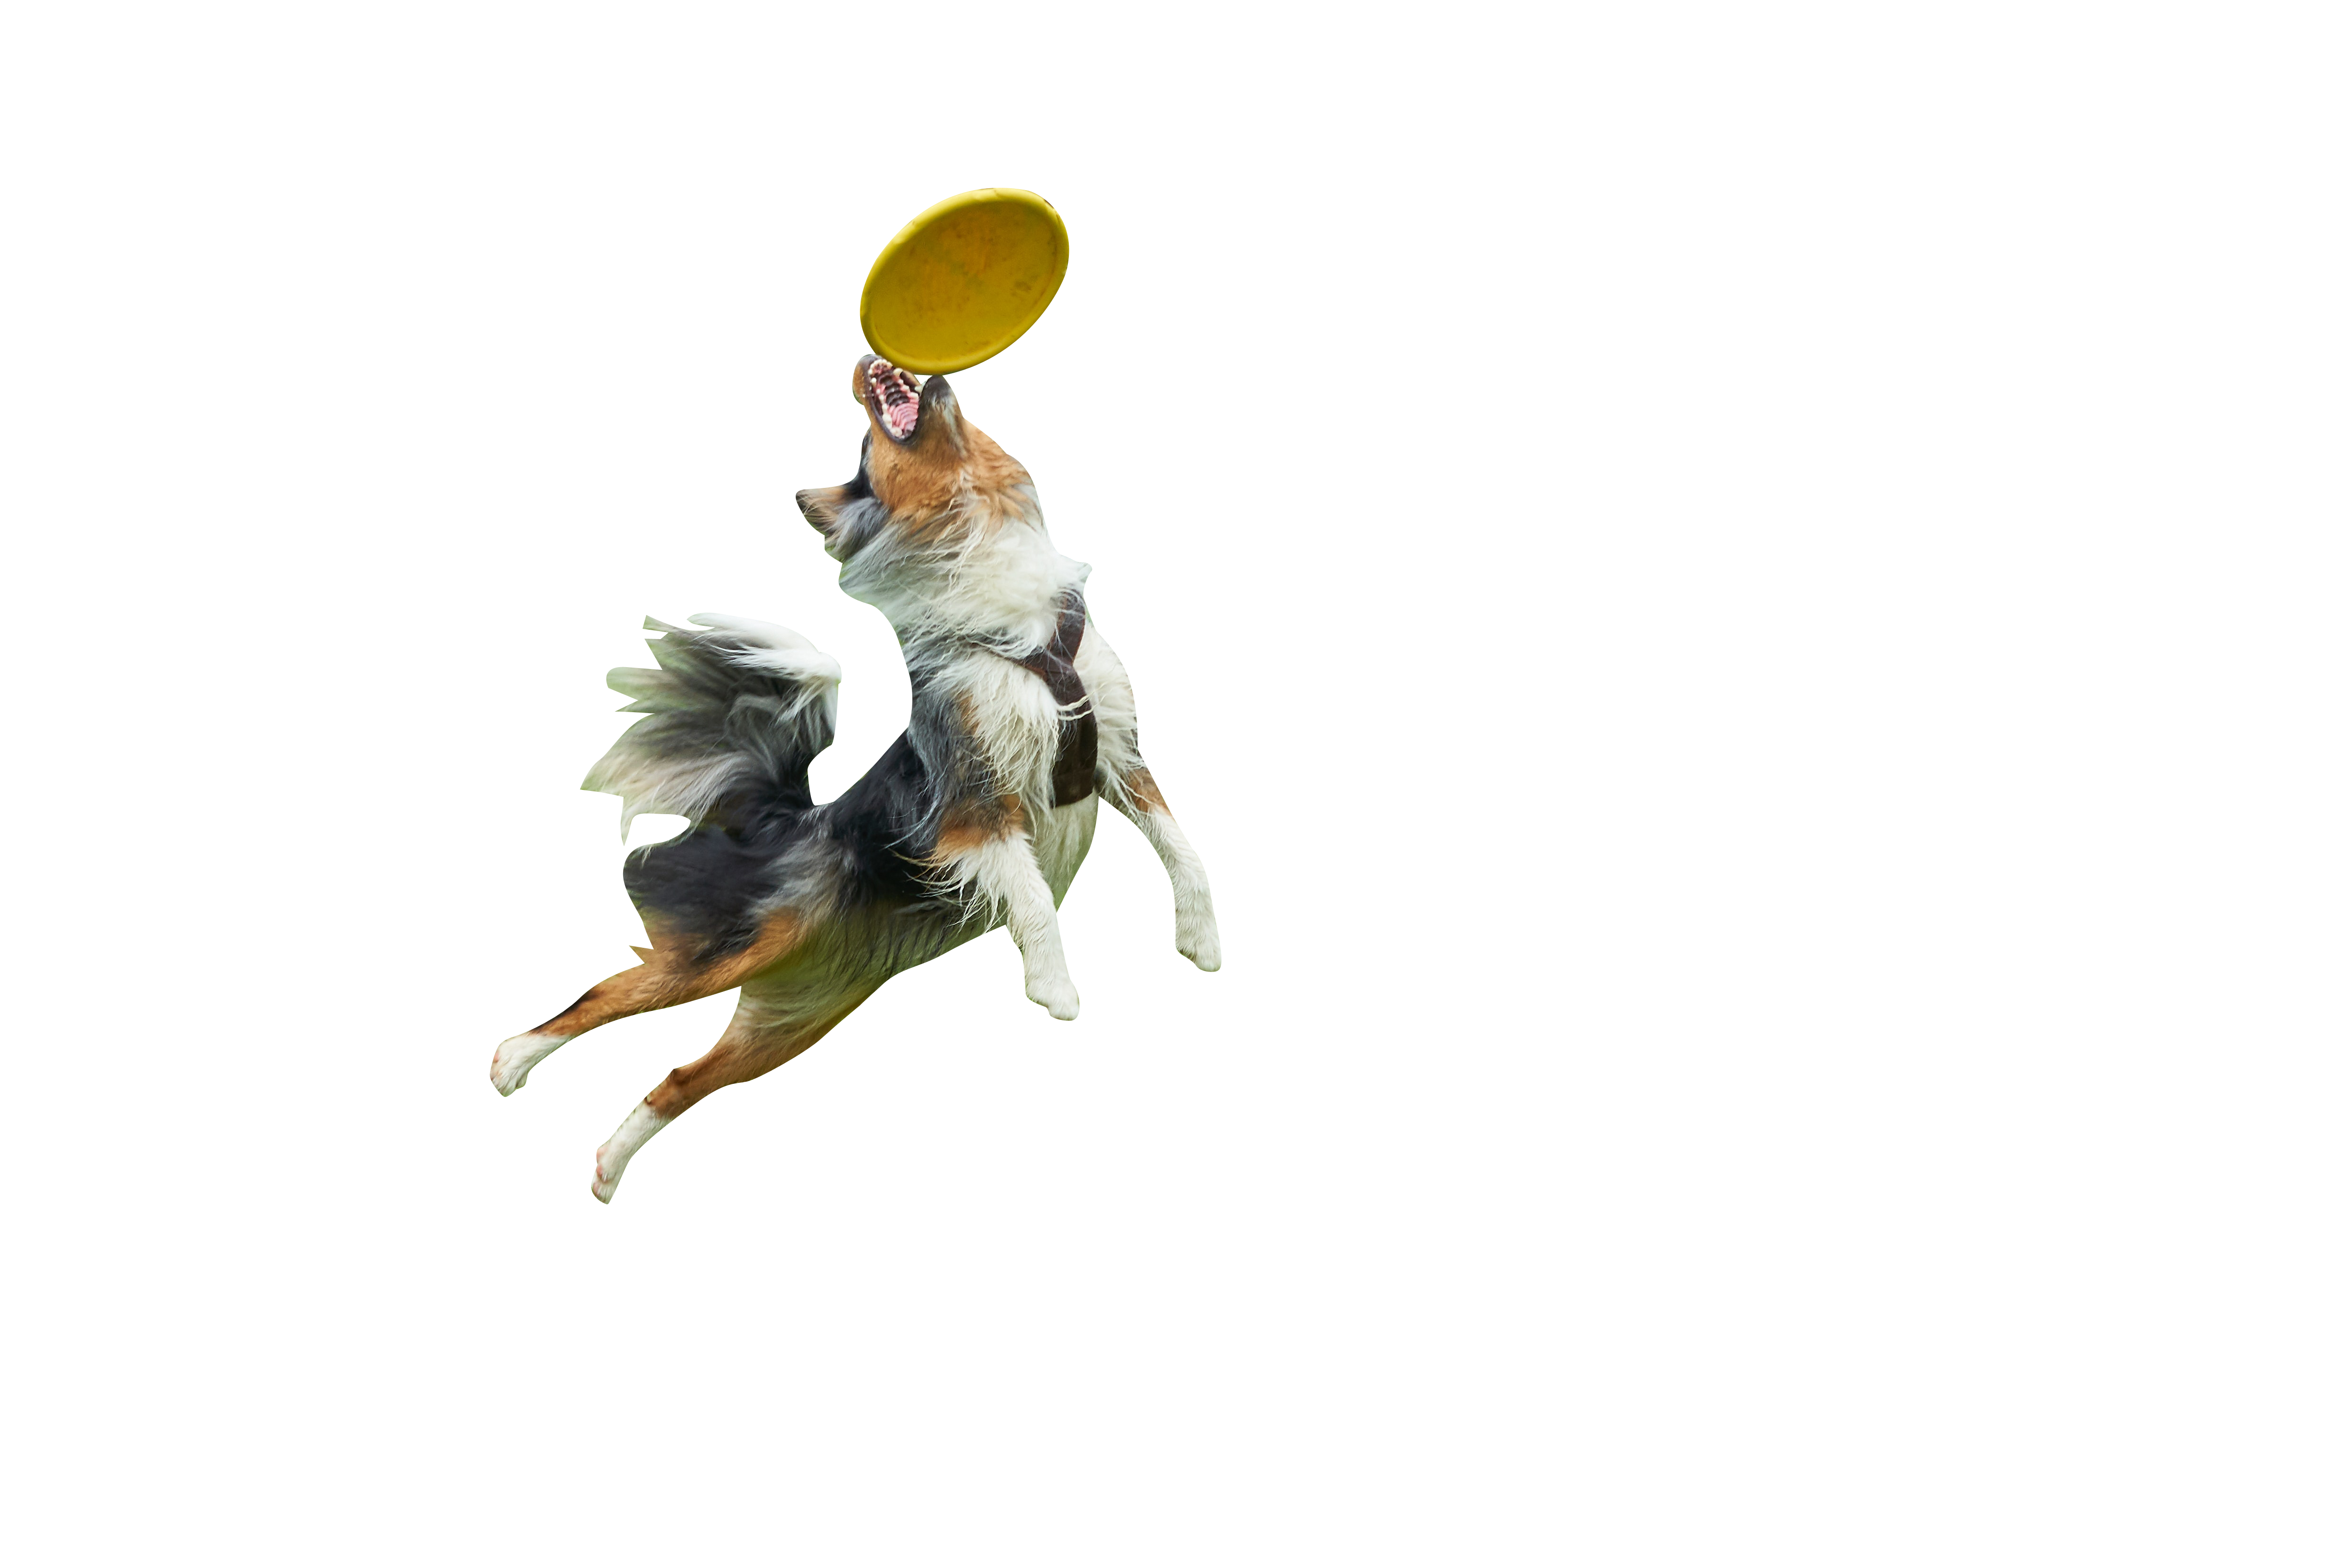 Dog playing catch Frisbee Transparent Background PNG